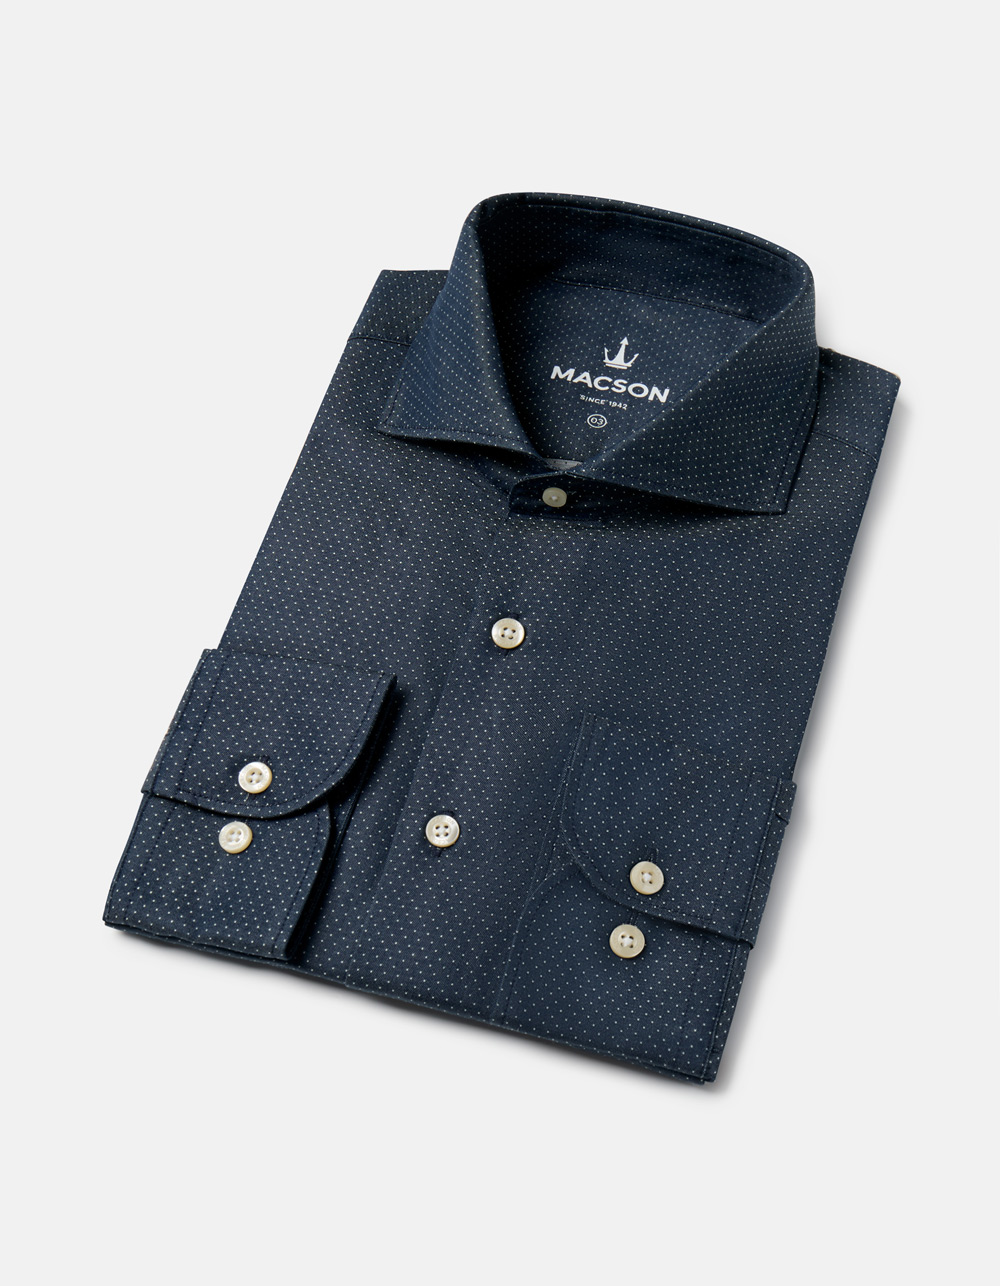 Navy blue micro-polka dots shirt